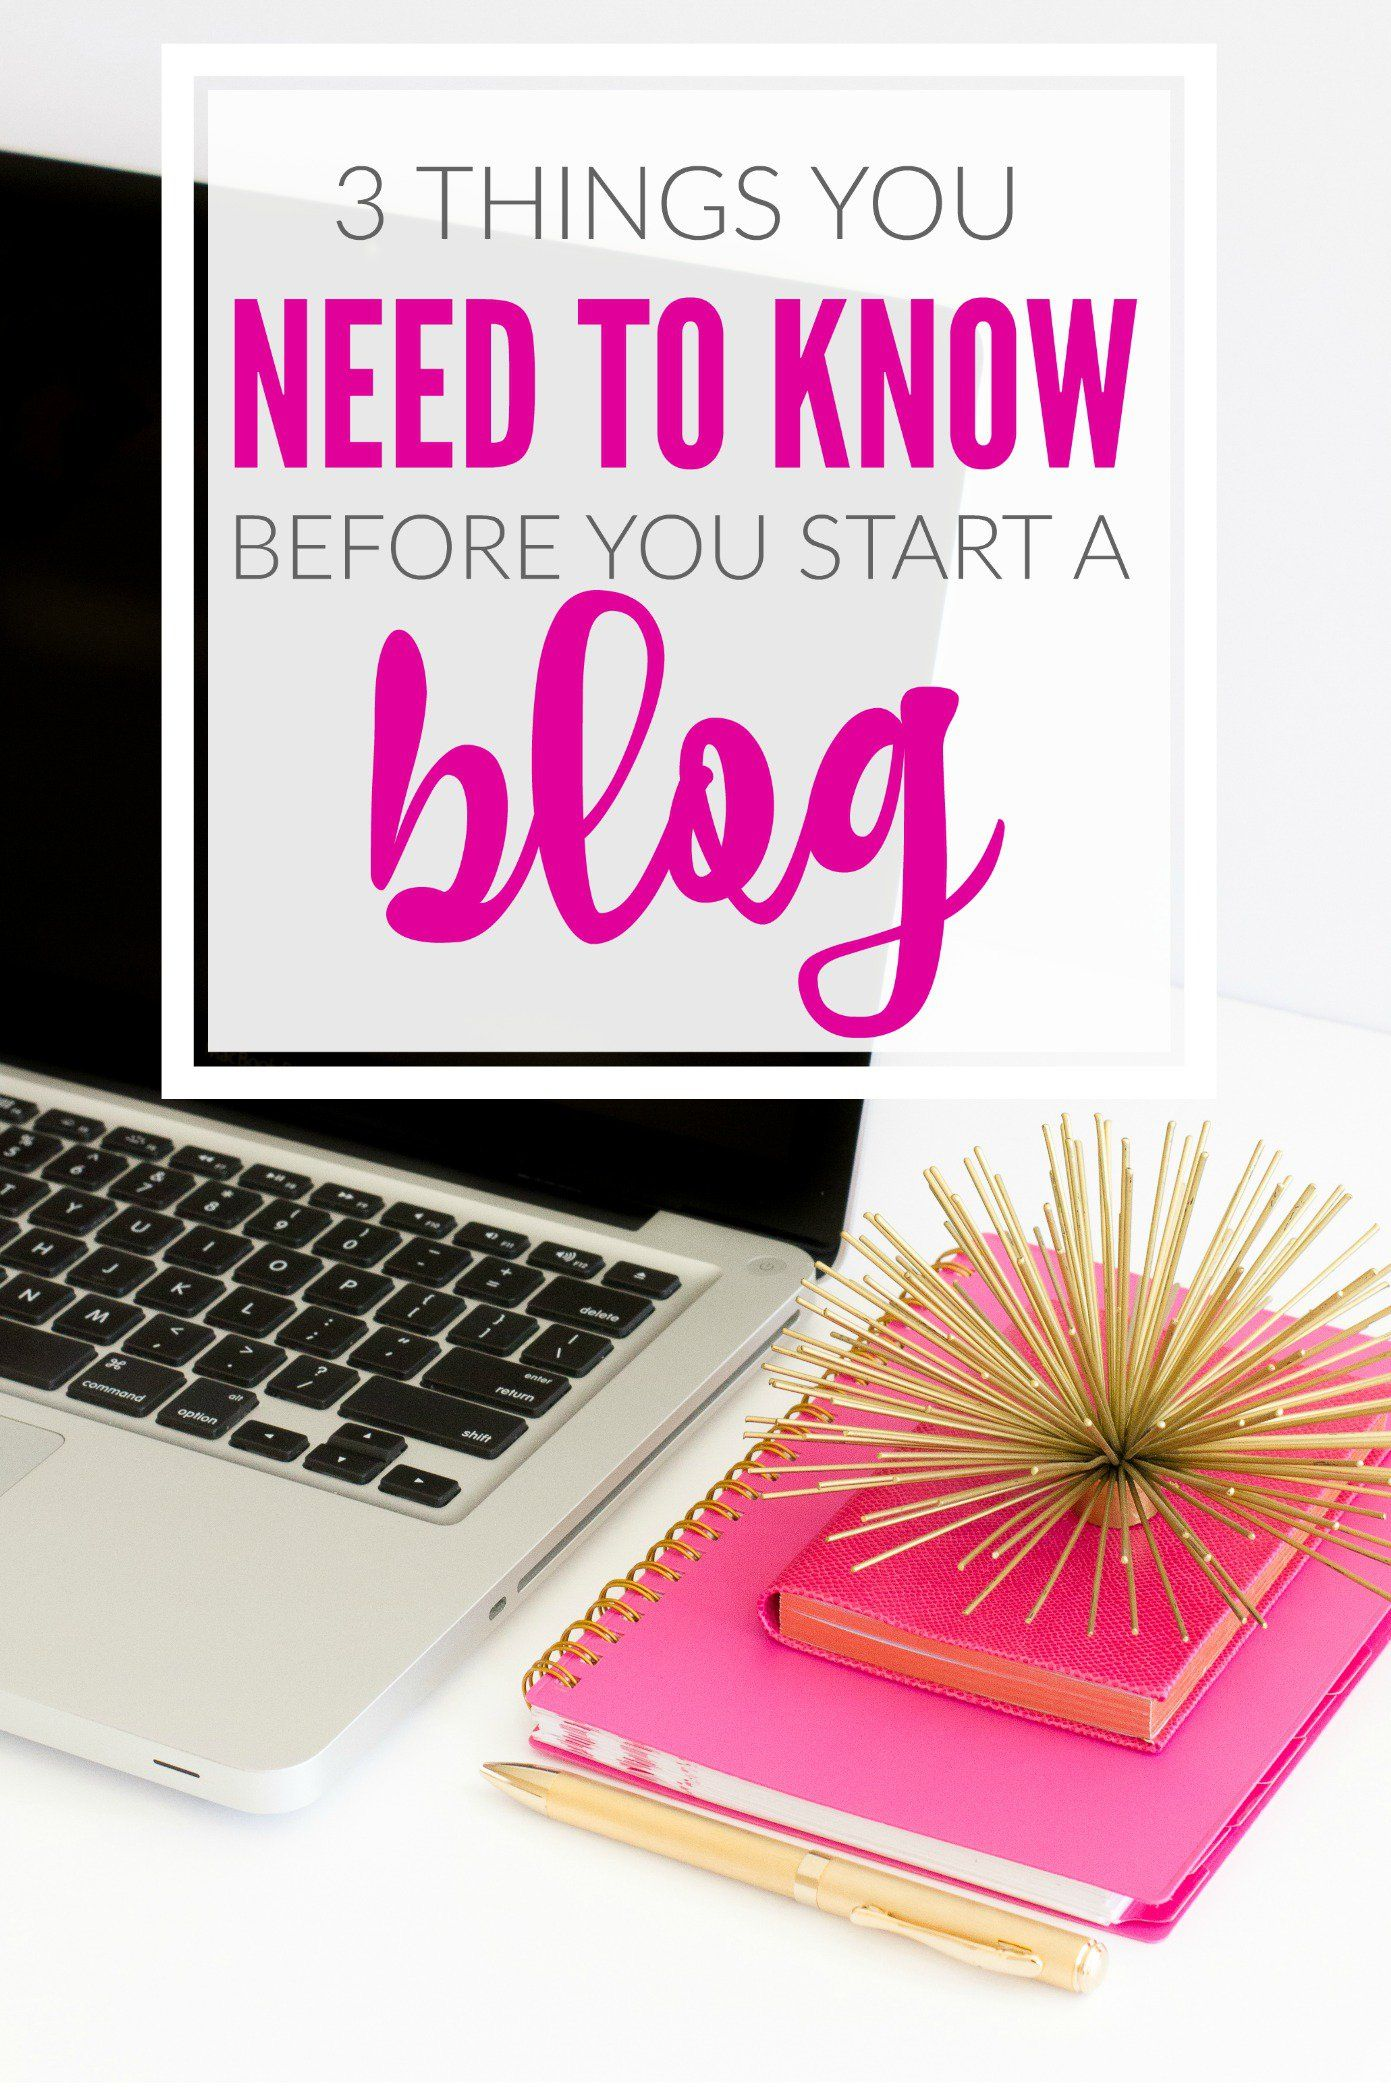 One of the questions I get asked all the time is about How to Make Money At Home and Specifically how to start a blog. When I first started blogging I had no clue it was even possible to make money at all, I just started because I was sharing deals with Friends and Family Members and I was writing about a topic that I was passionate about. Read More - http://www.passionforsavings.com/how-to-start-blog-make-money-home/